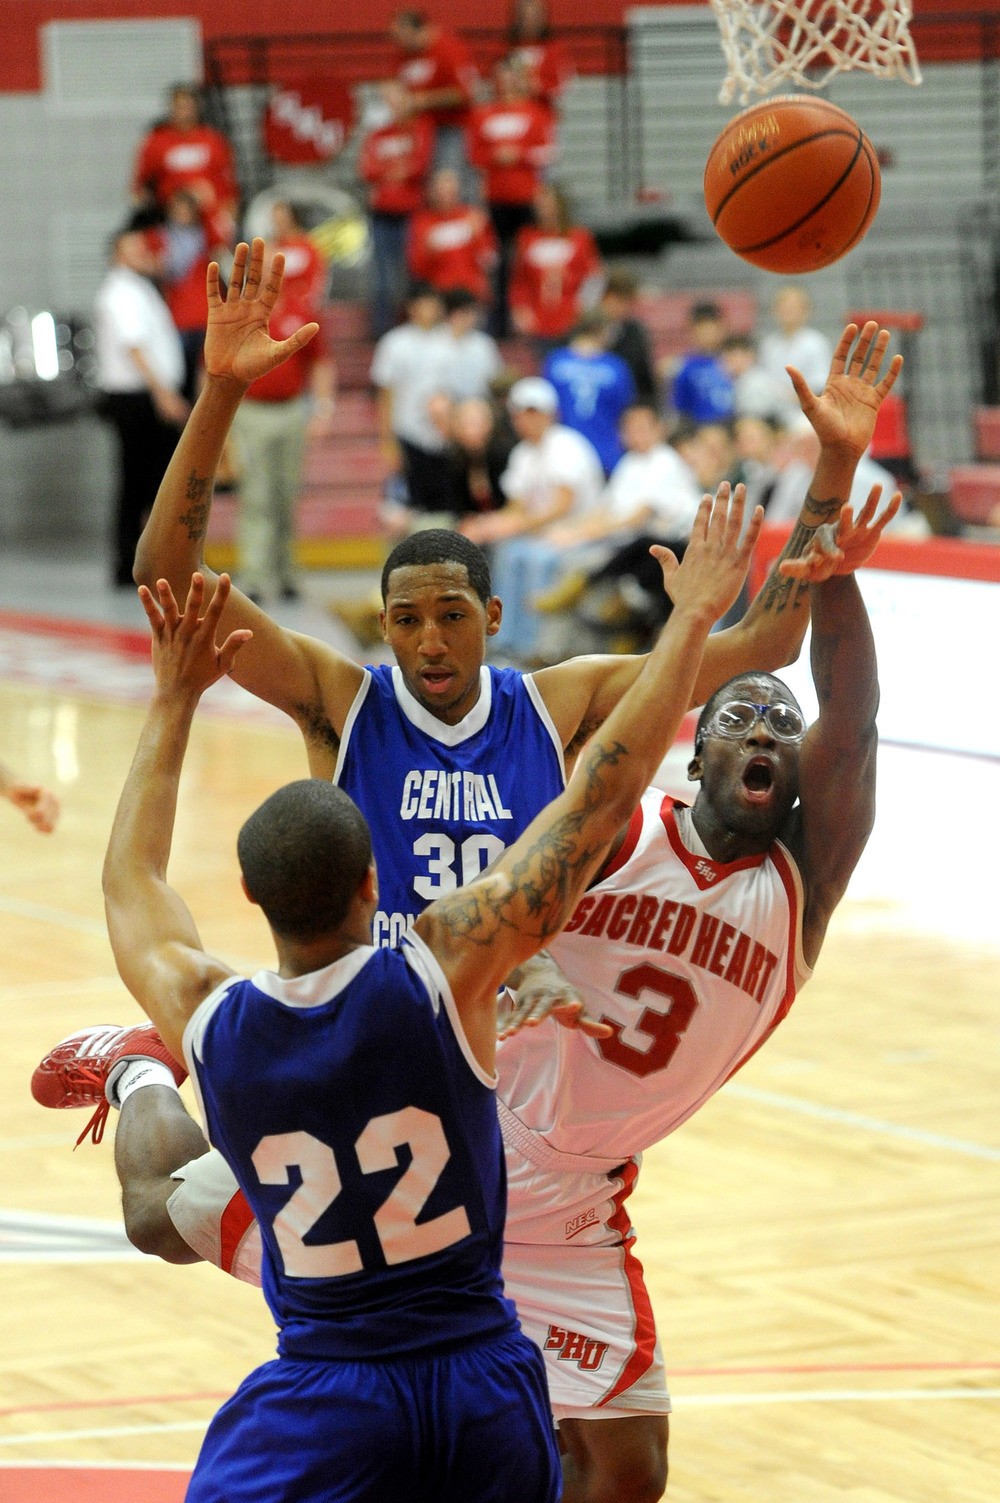 Sacred Heart University's Jerrell Thompson puts up a shot as he is defended by Ken Horton, back, and Devan Bailey, front, at CCSU in Fairfield on January 13, 2011.